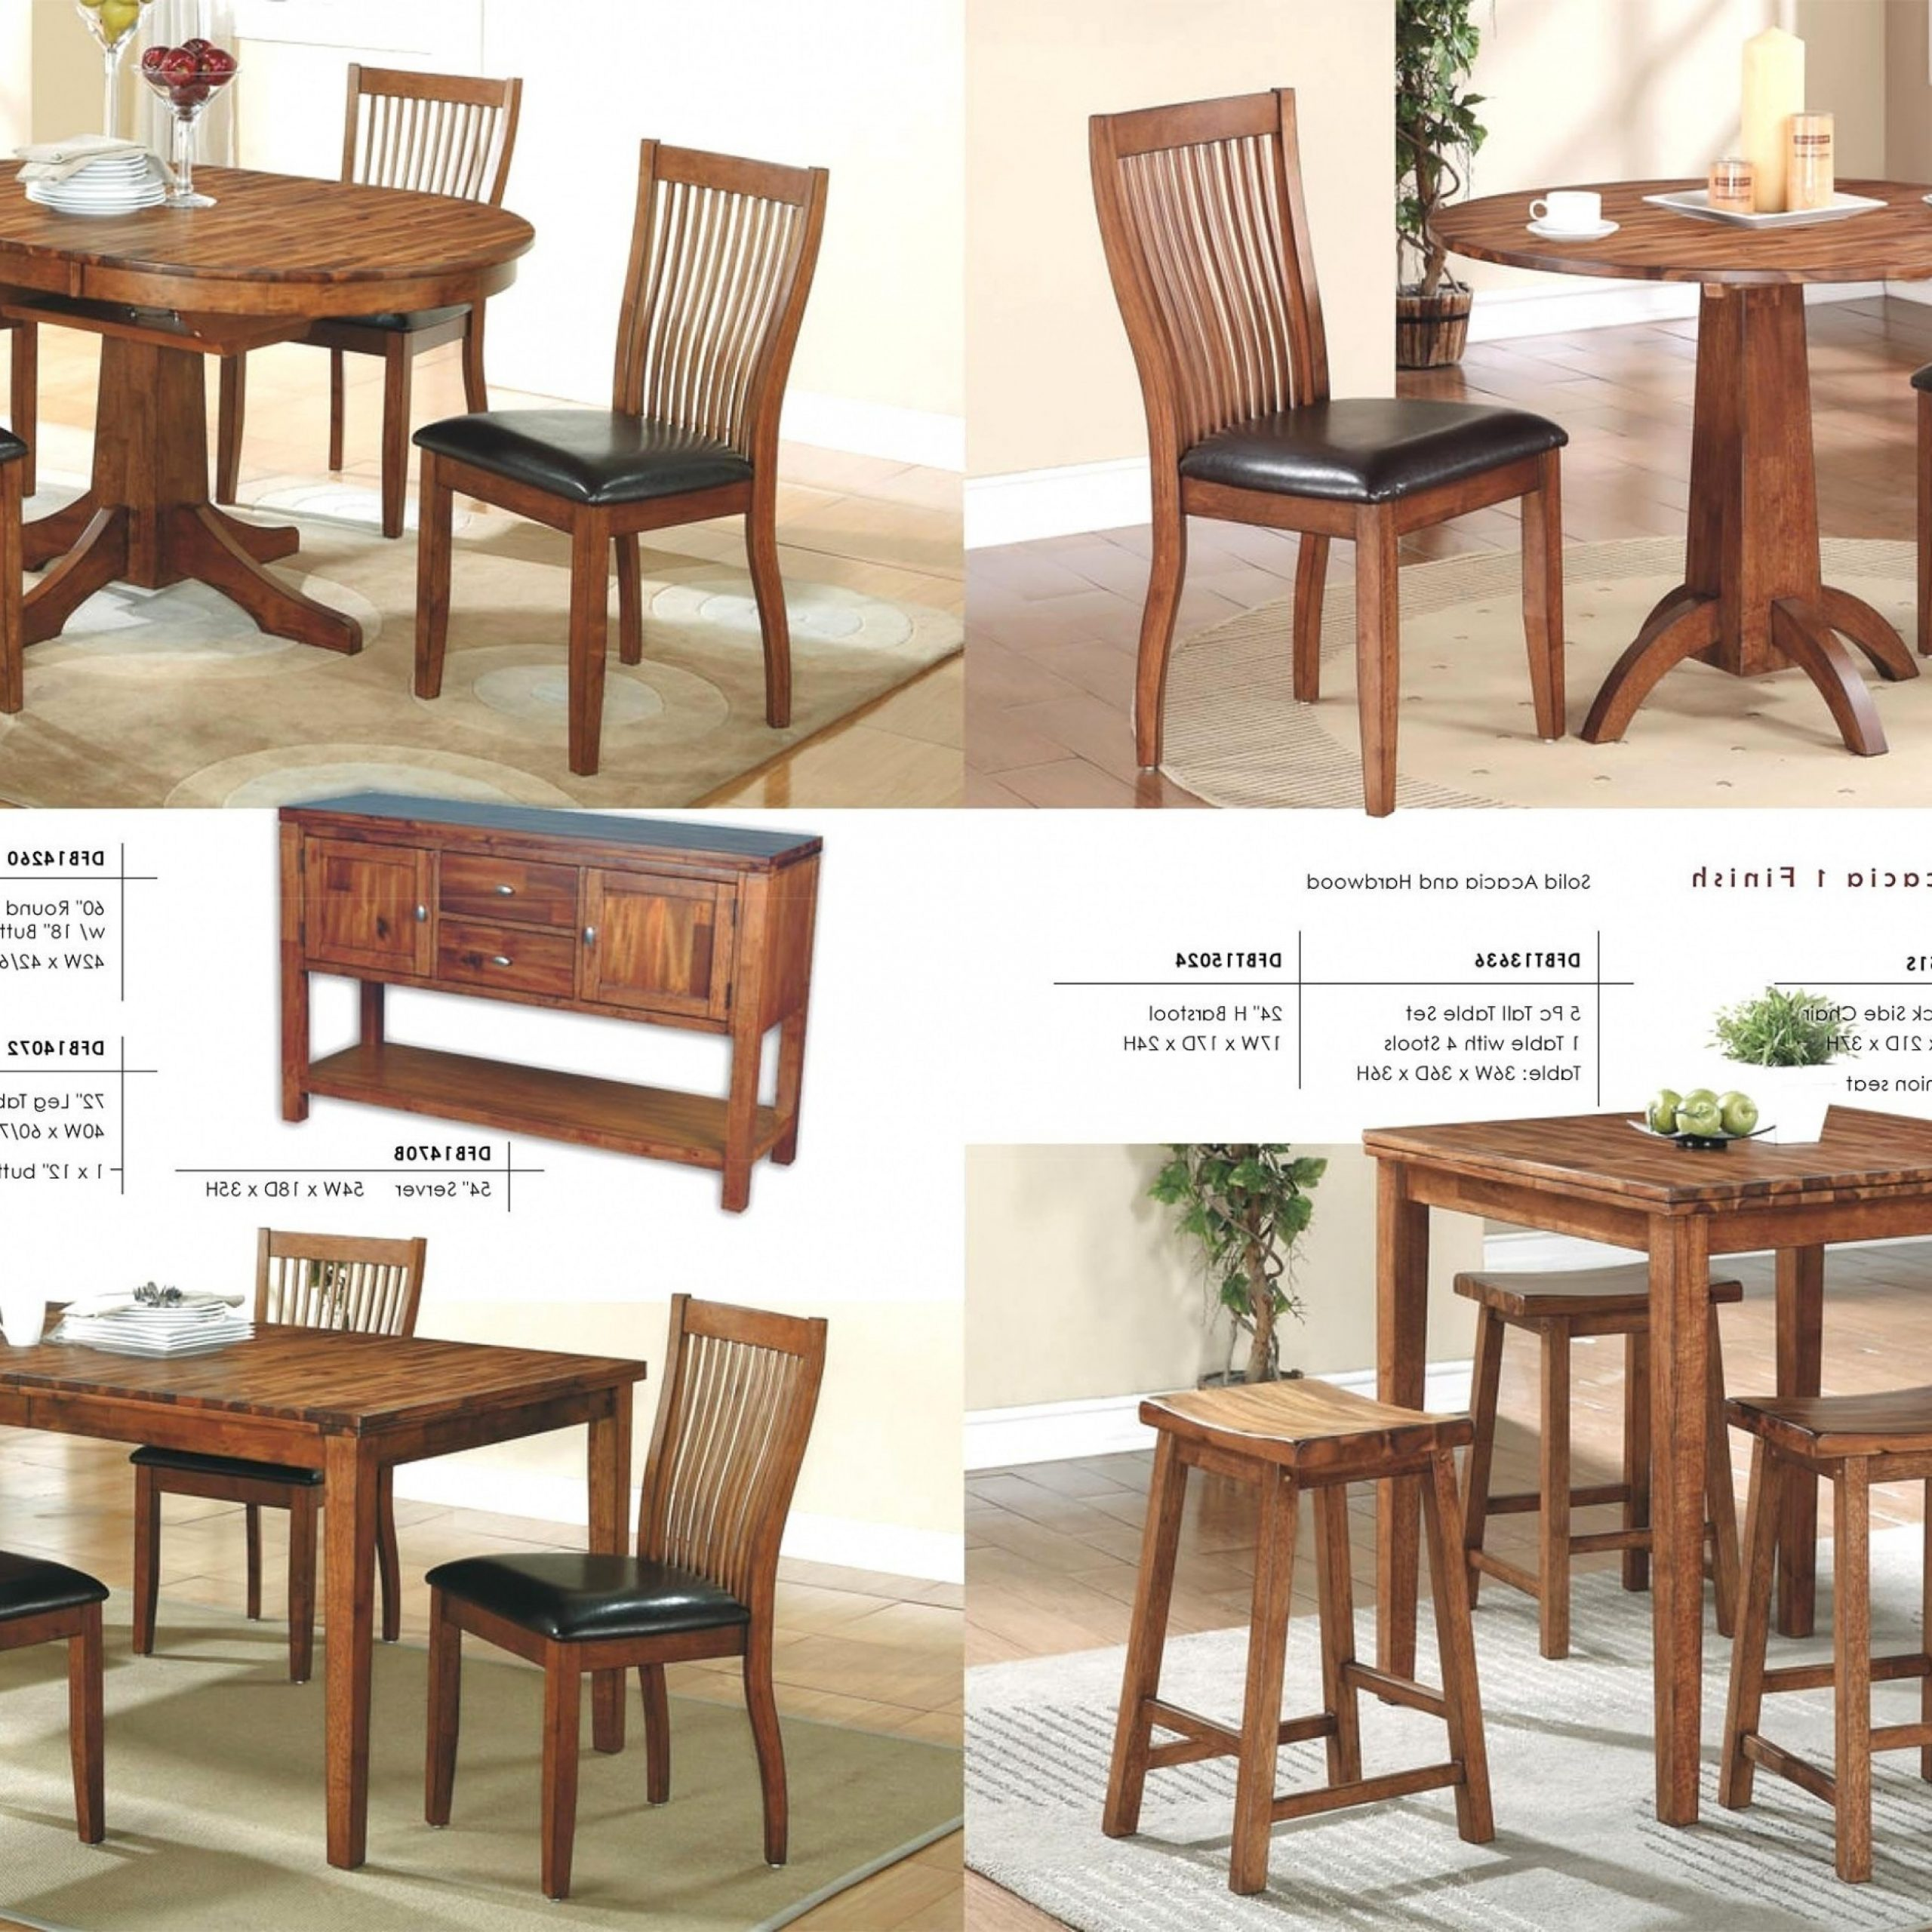 Trendy Dining Room Table Sales Elegant New Small Round Kitchen Regarding Elegance Small Round Dining Tables (View 21 of 30)